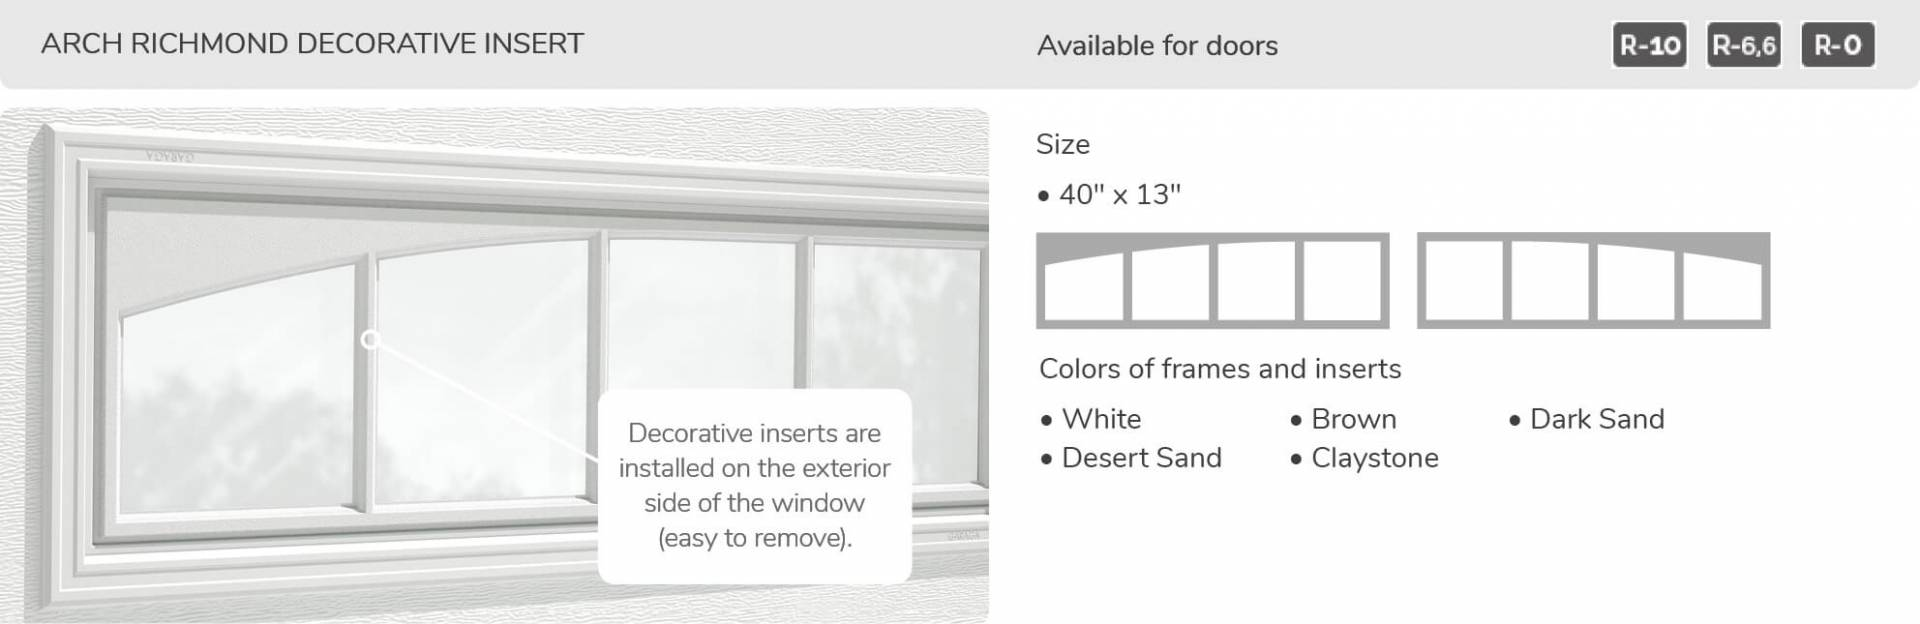 Arch Richmond Decorative Insert, 40' x 13', available for doors R-10, R-6.6, R-0